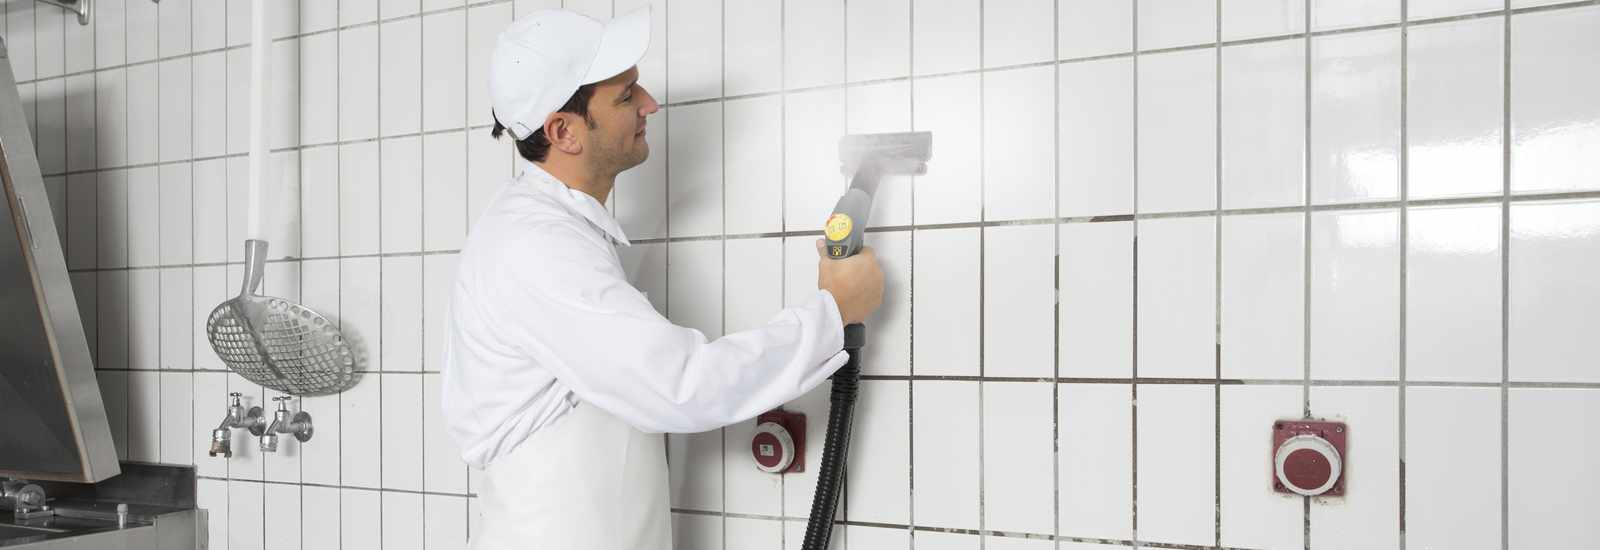 steam cleaning tiled walls in a commercial kitchen